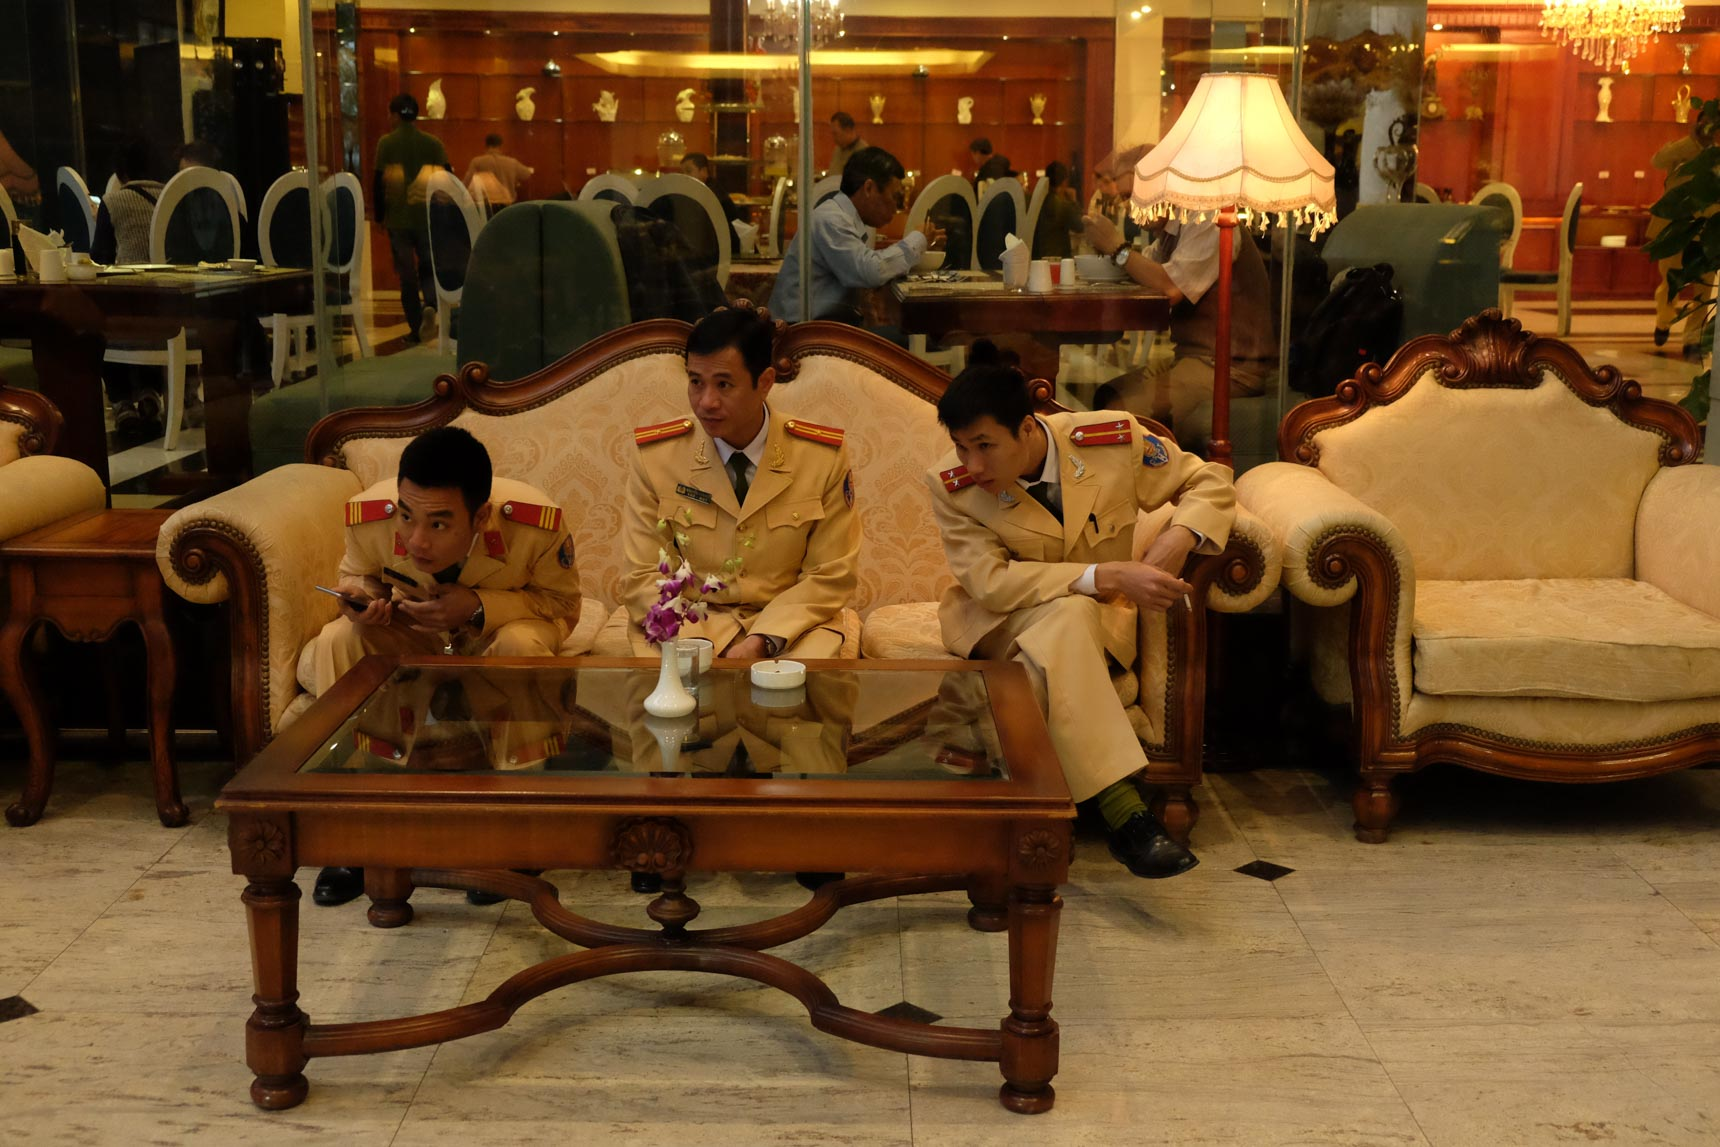 Military Officers in Hotel Lobby